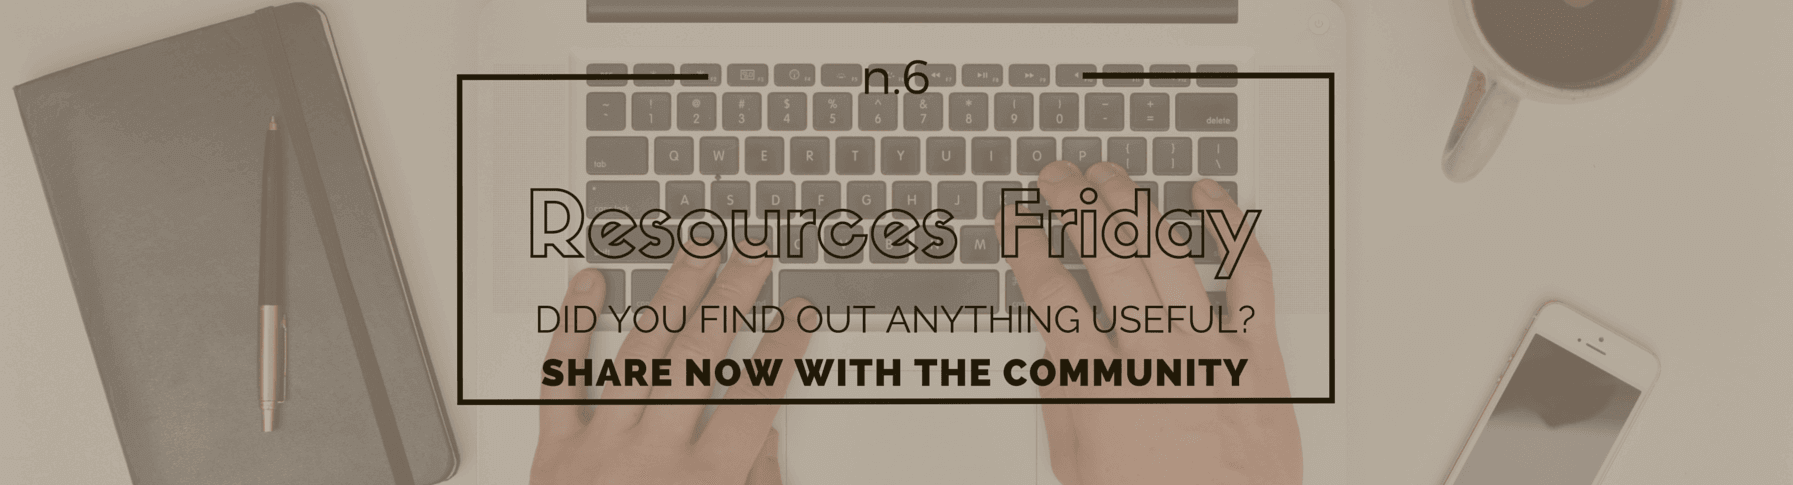 Resources Friday n.6